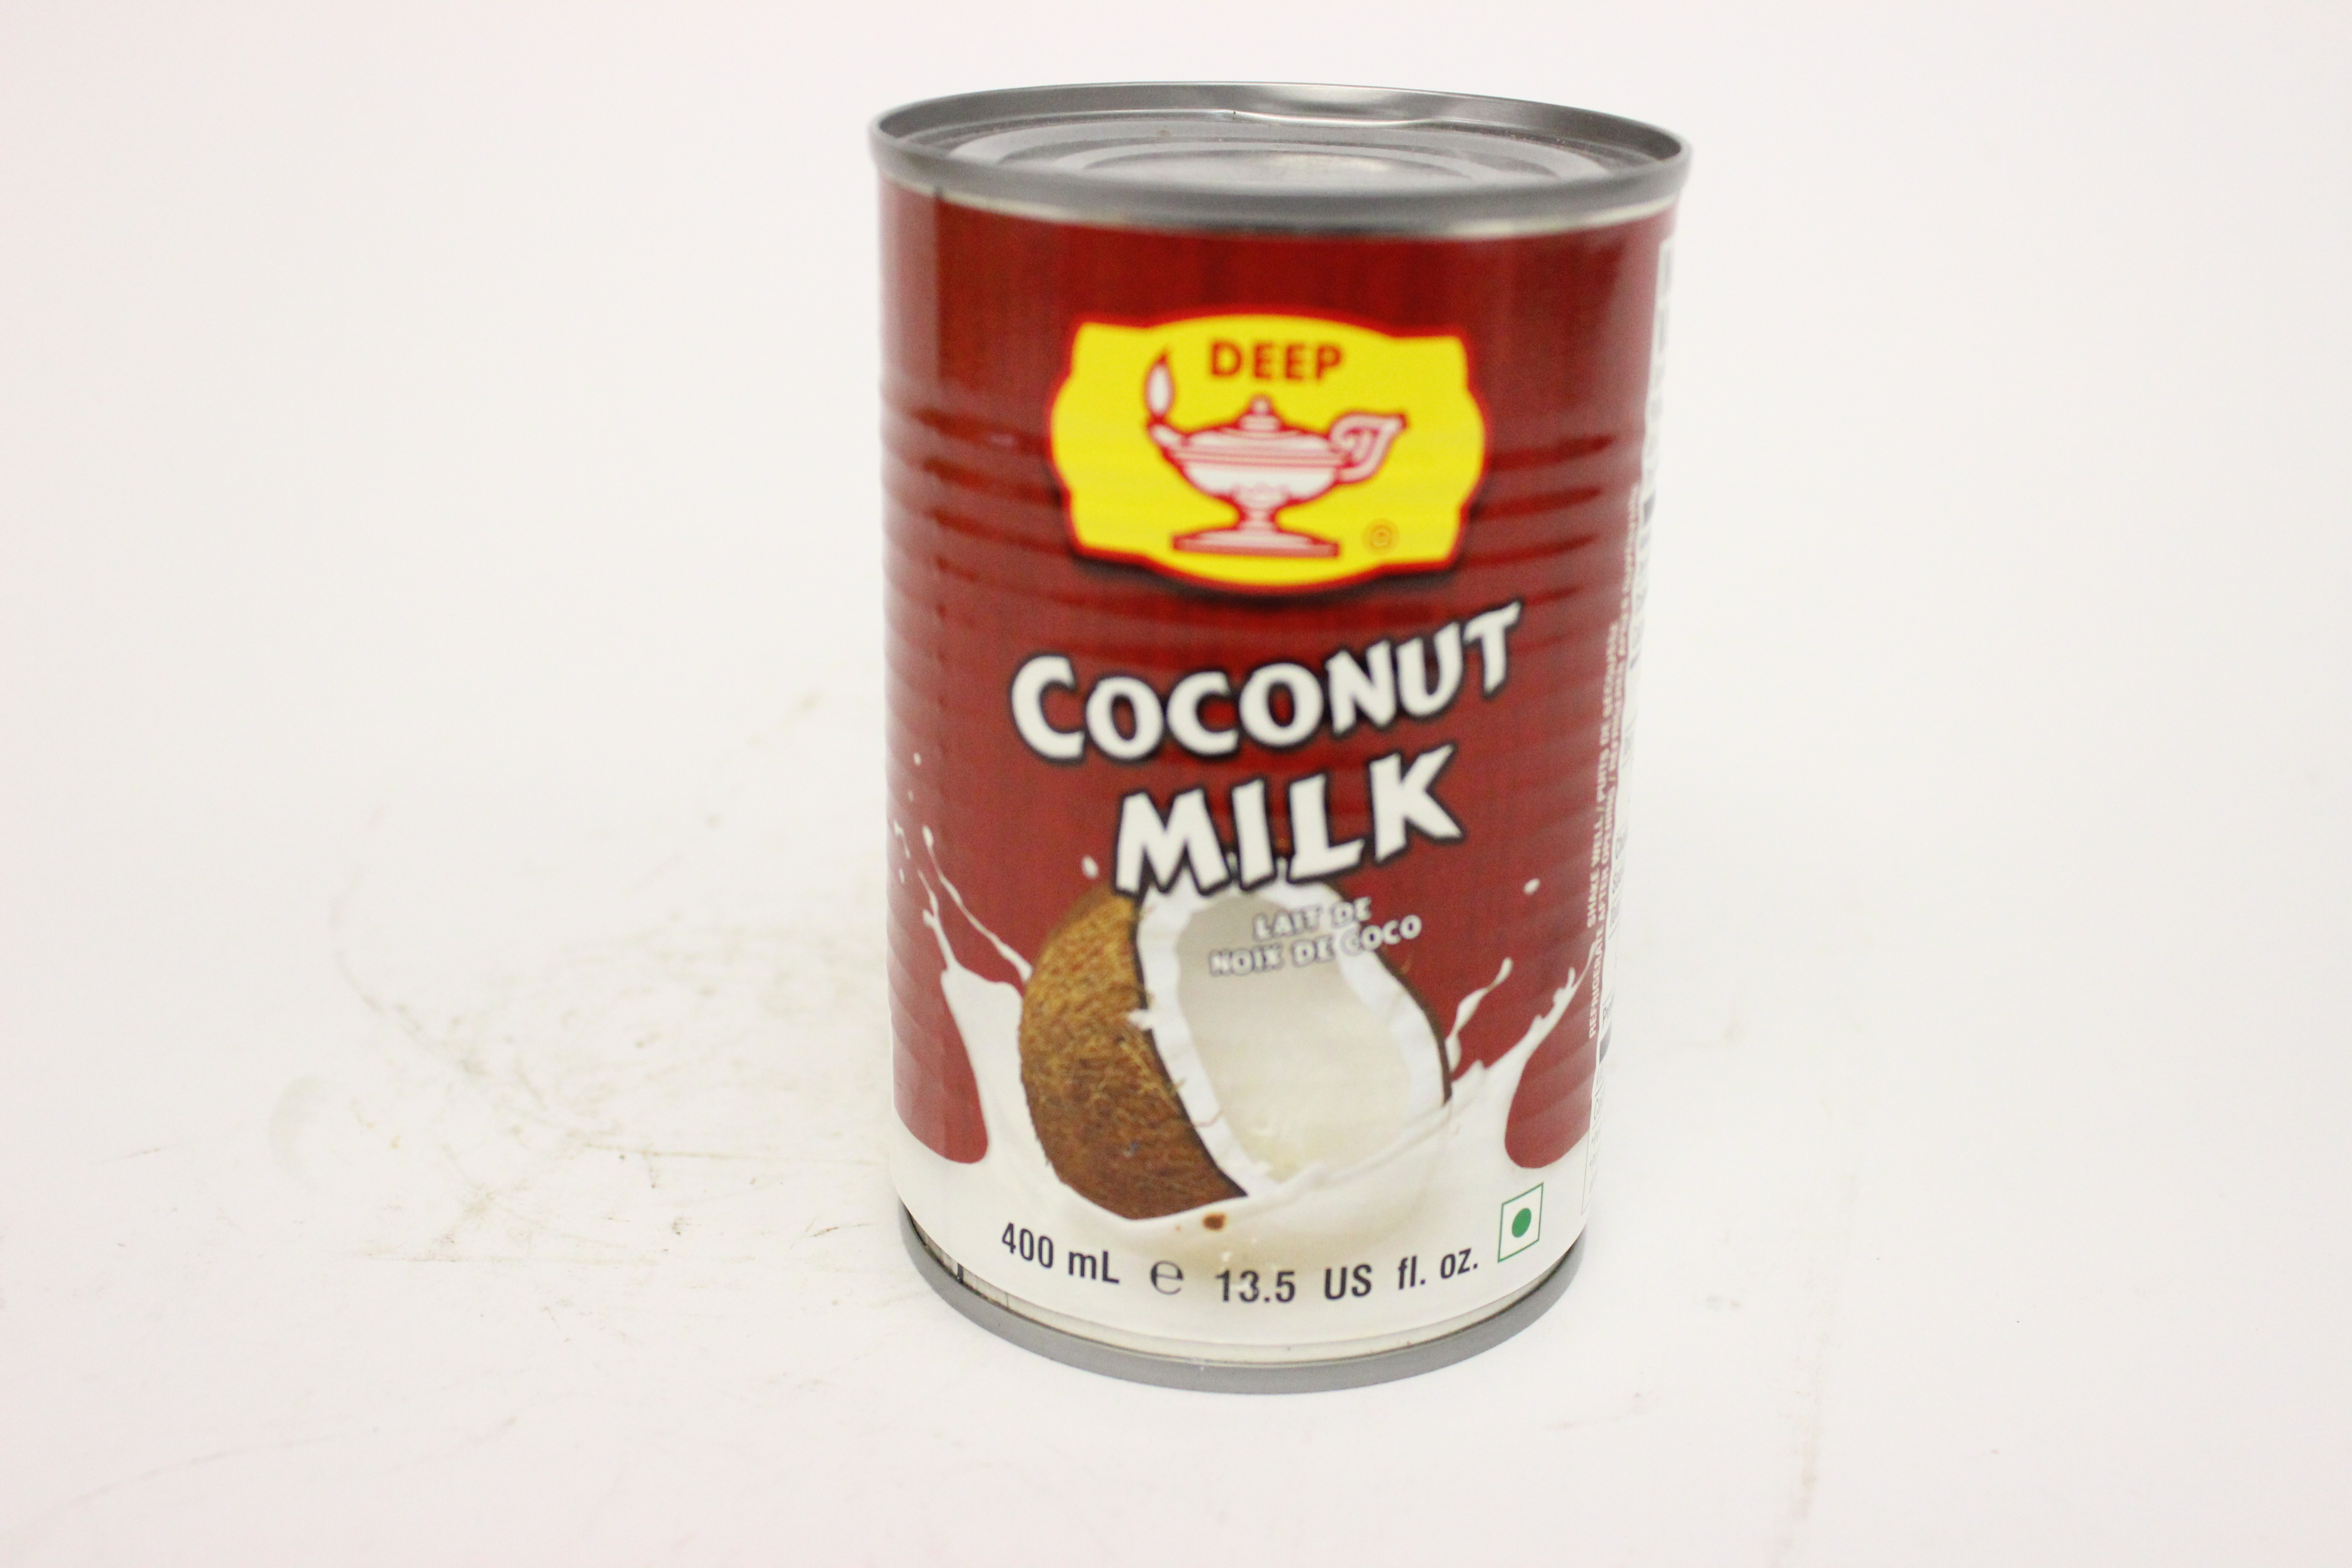 Coconut Milk 13.5 oz